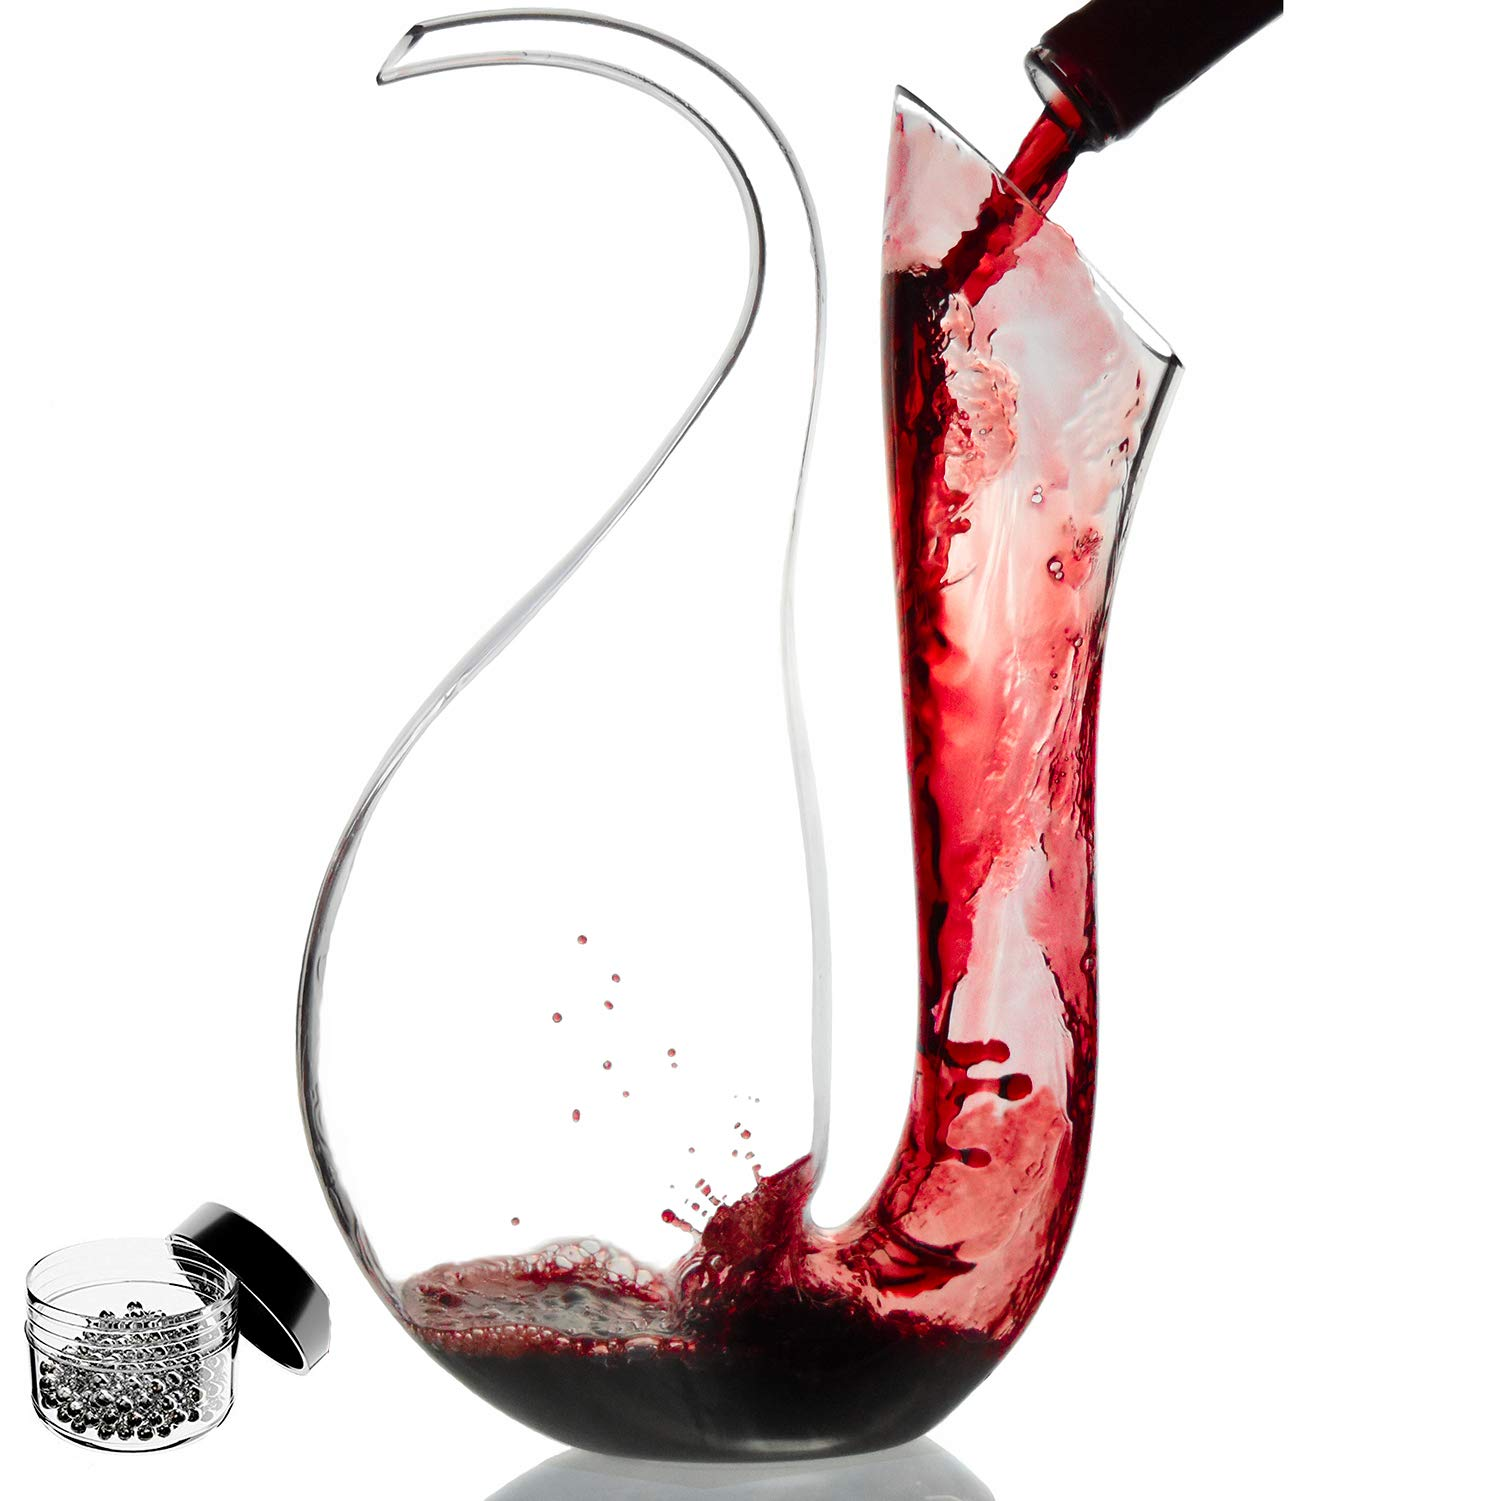 Amazing Home Penguin Wine Decanter 100% Hand Blown Lead-free Crystal Glass,Prepackaged Red Wine Carafe, Wine Gift, Wine Accessories,Luxury Gift Box Wraped and Free Cleaning Beads Set